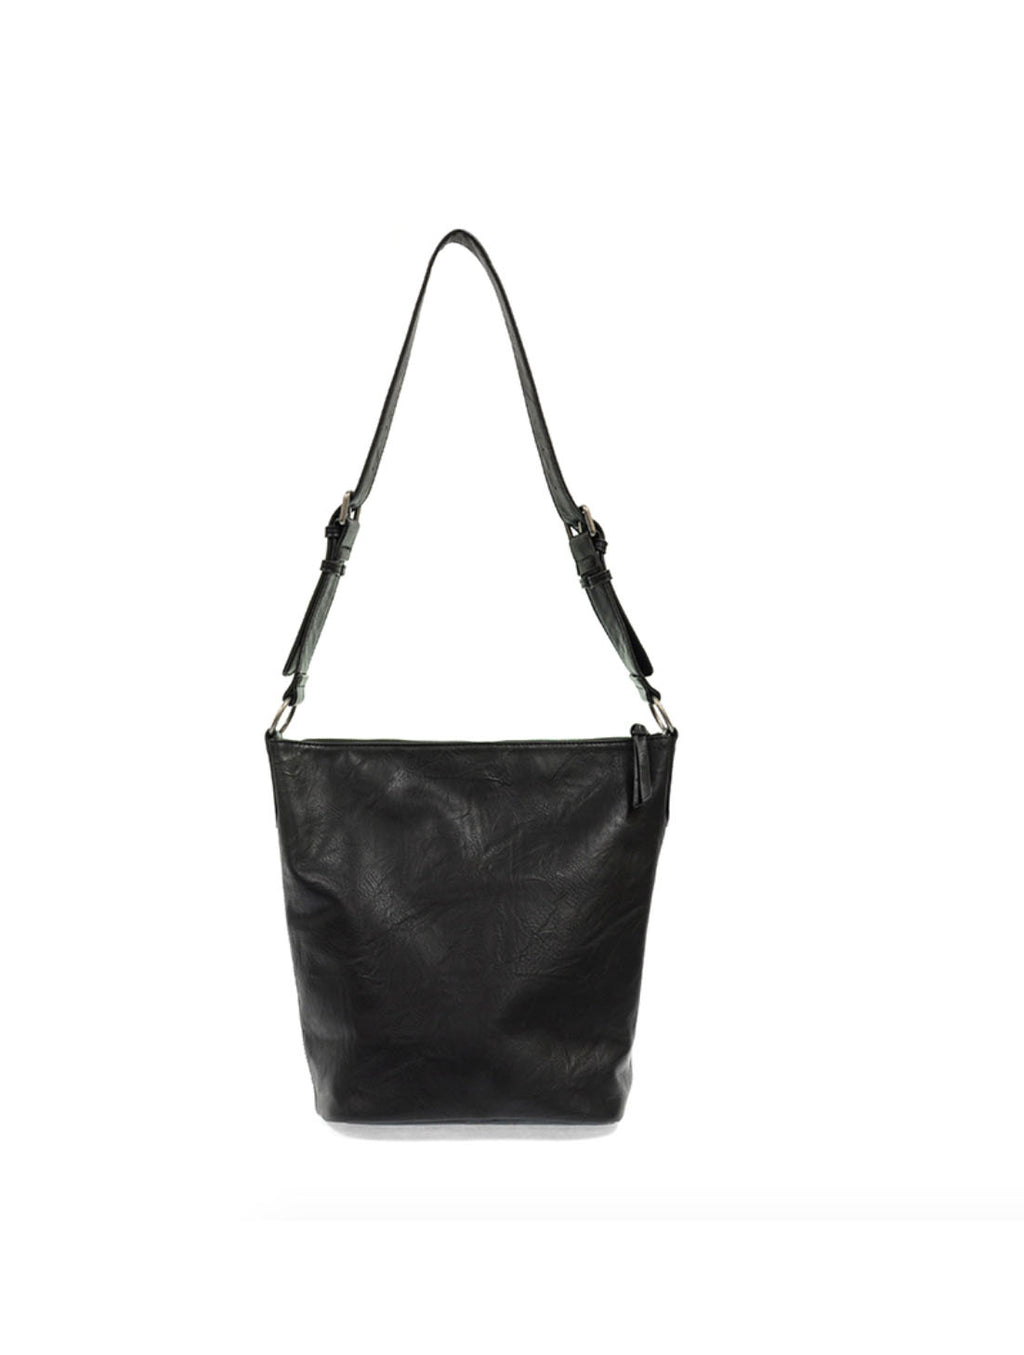 Joy Susan Nori Bucket Bag in Black